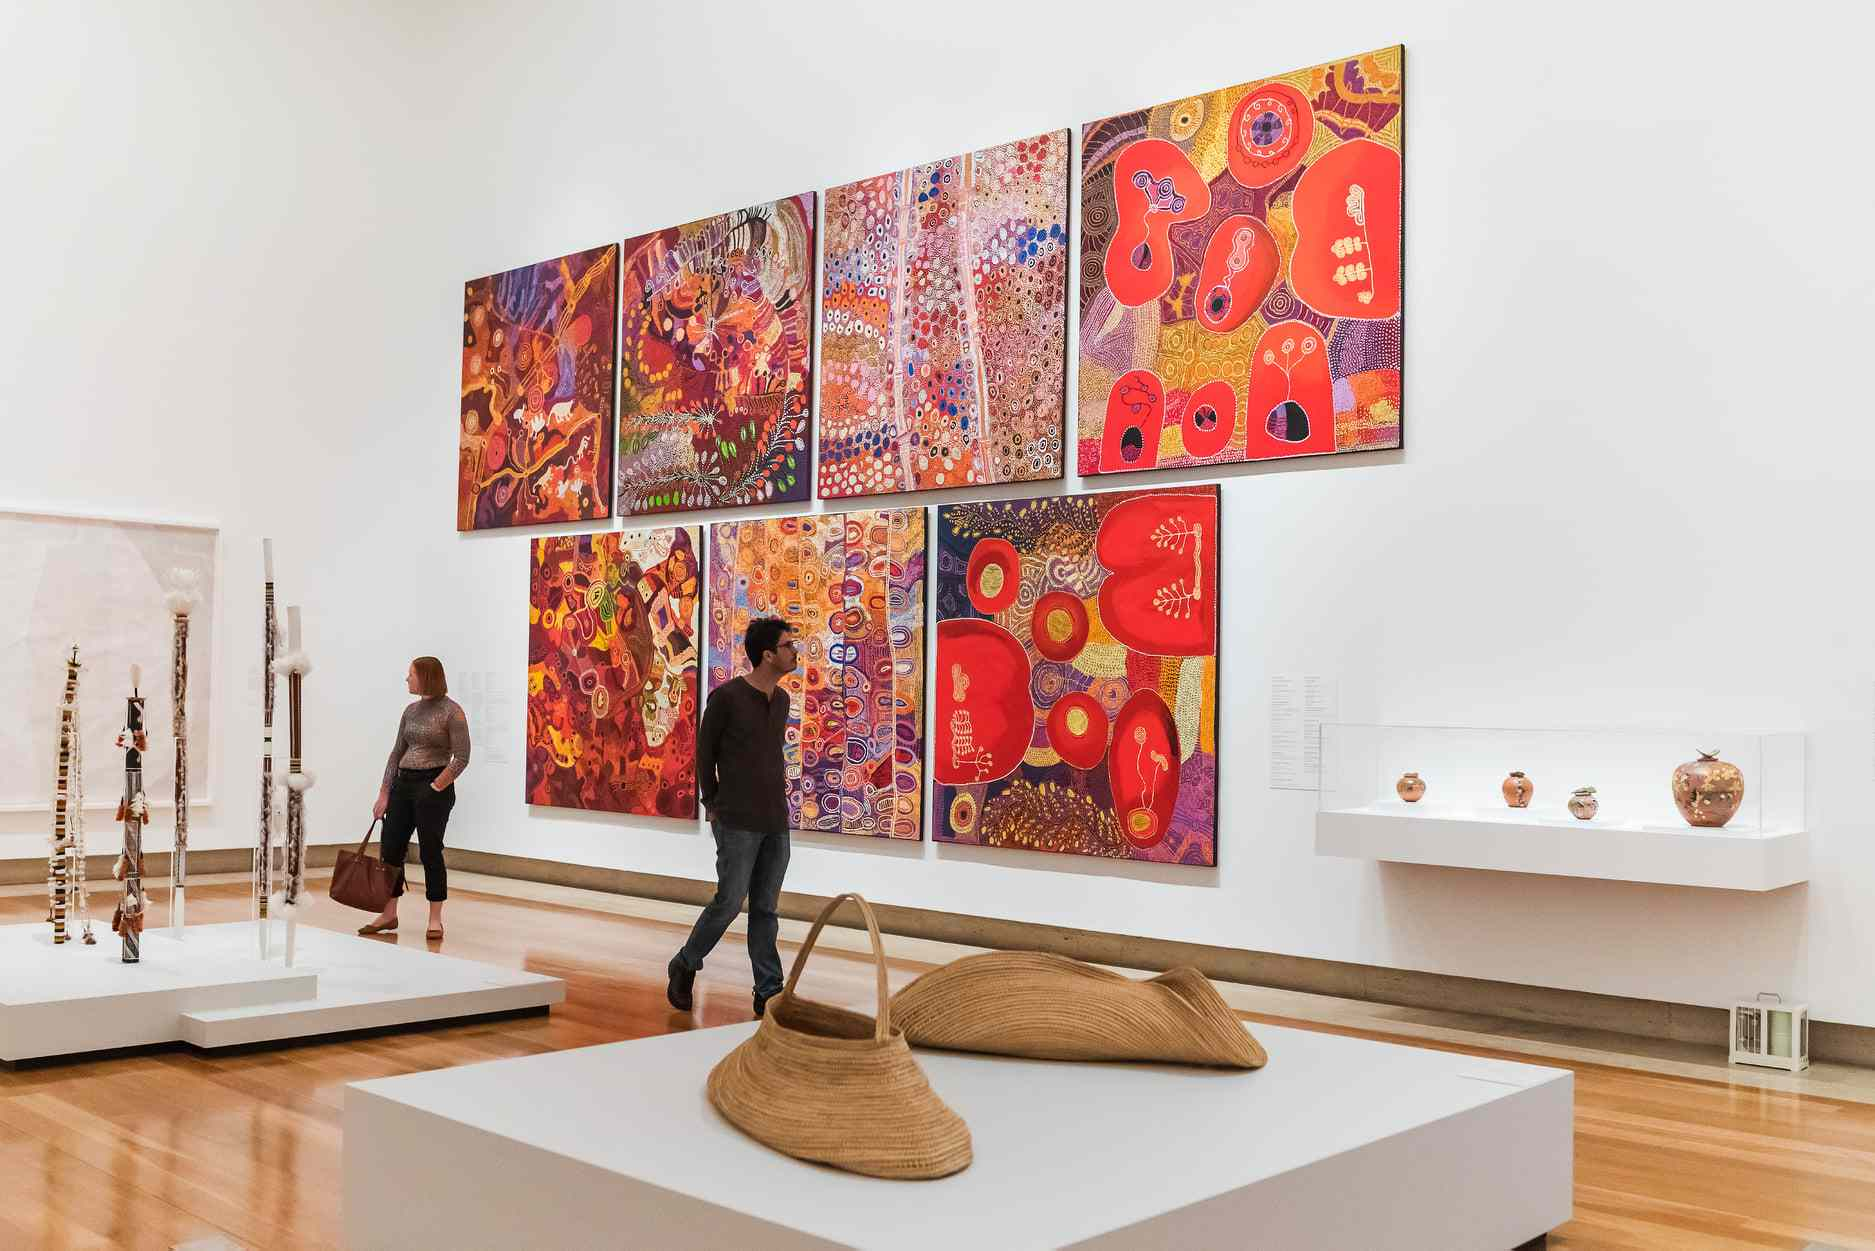 Two people walking in front of Seven large square red paintings on gallery wall